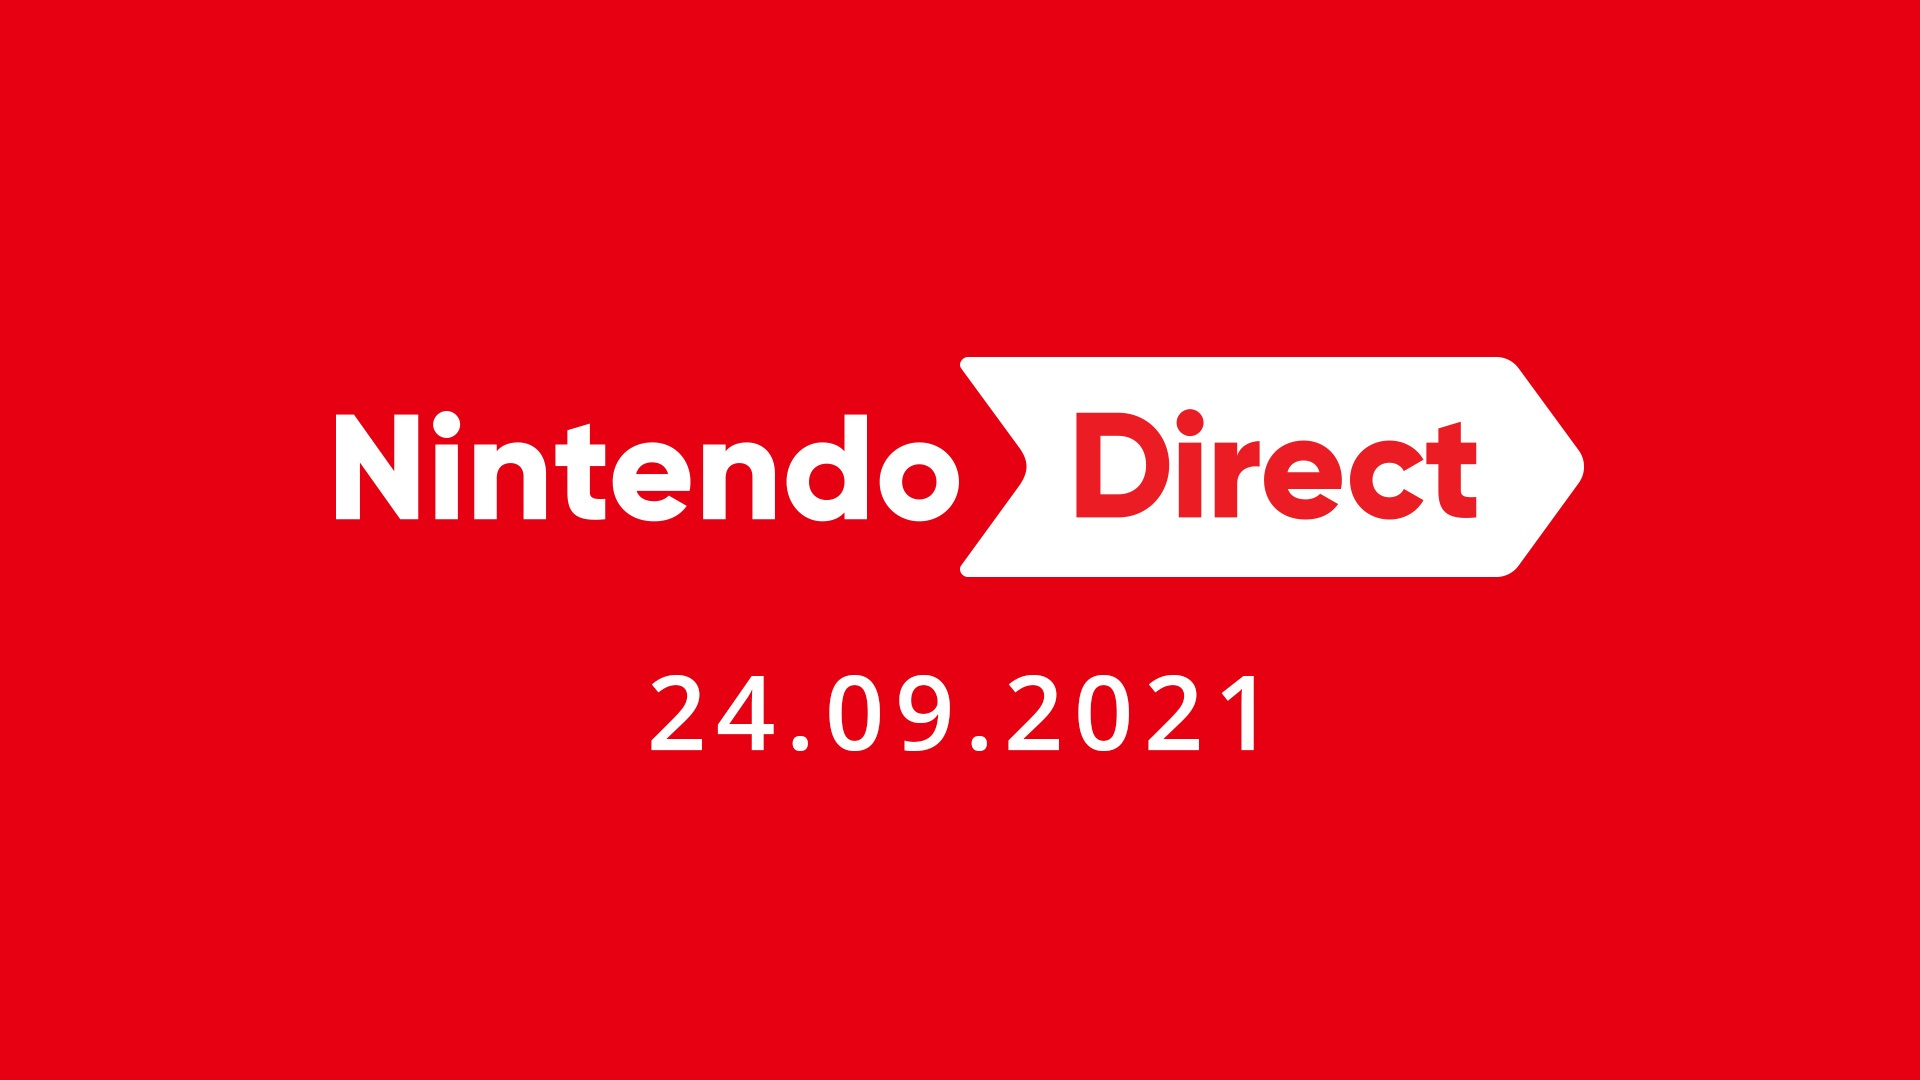 Nintendo Direct: That's what fans want from the new edition